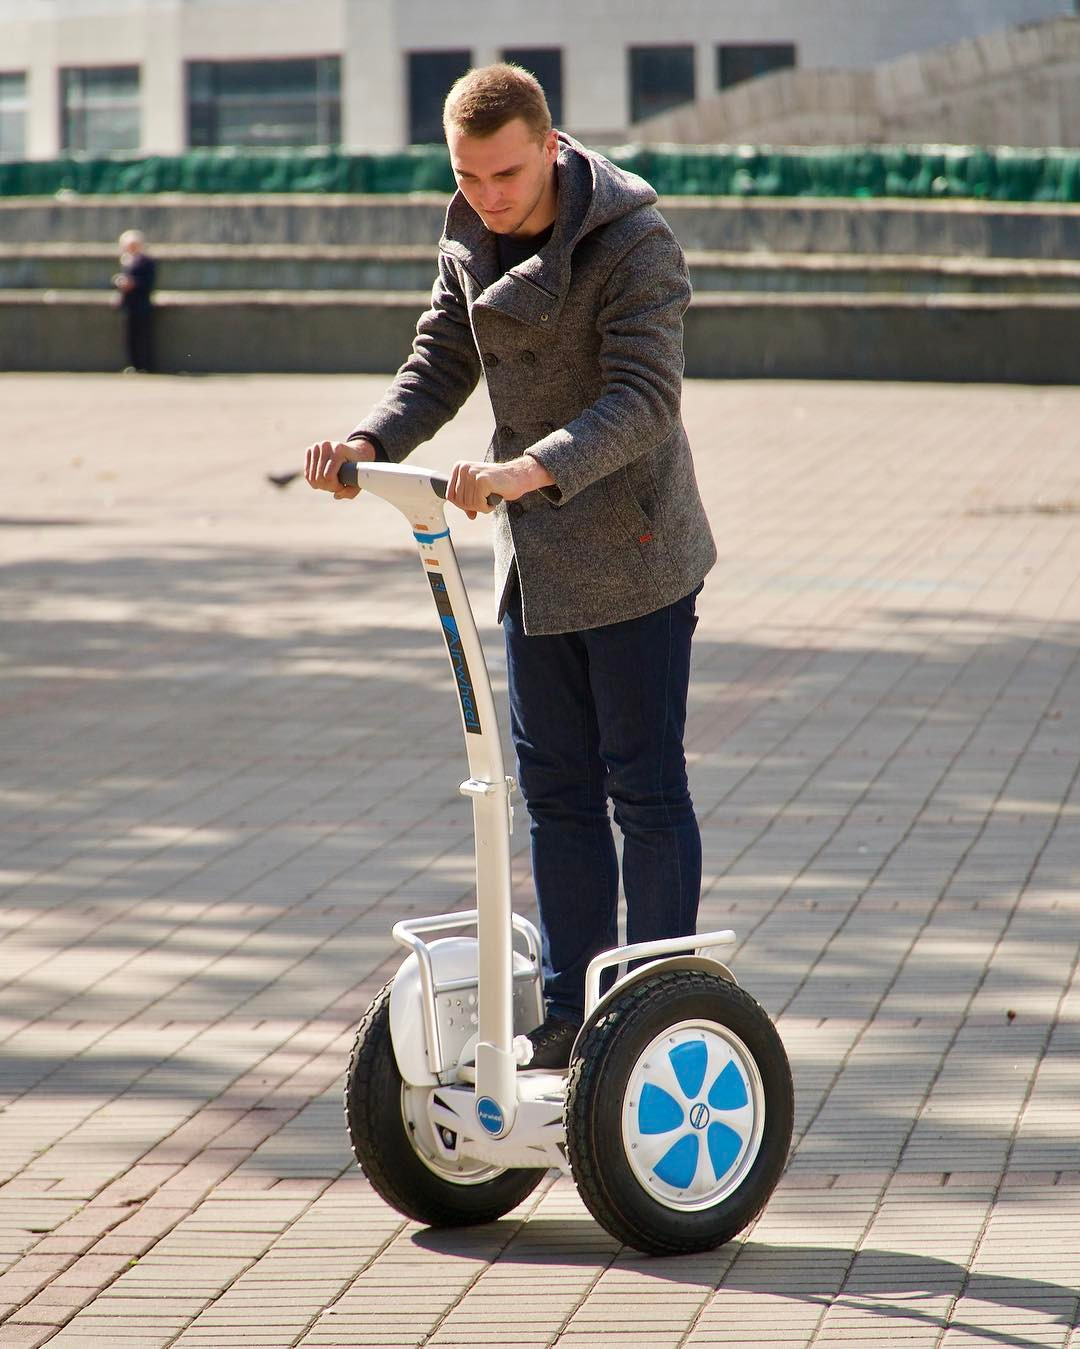 Airwheel S5 electric standing scooter